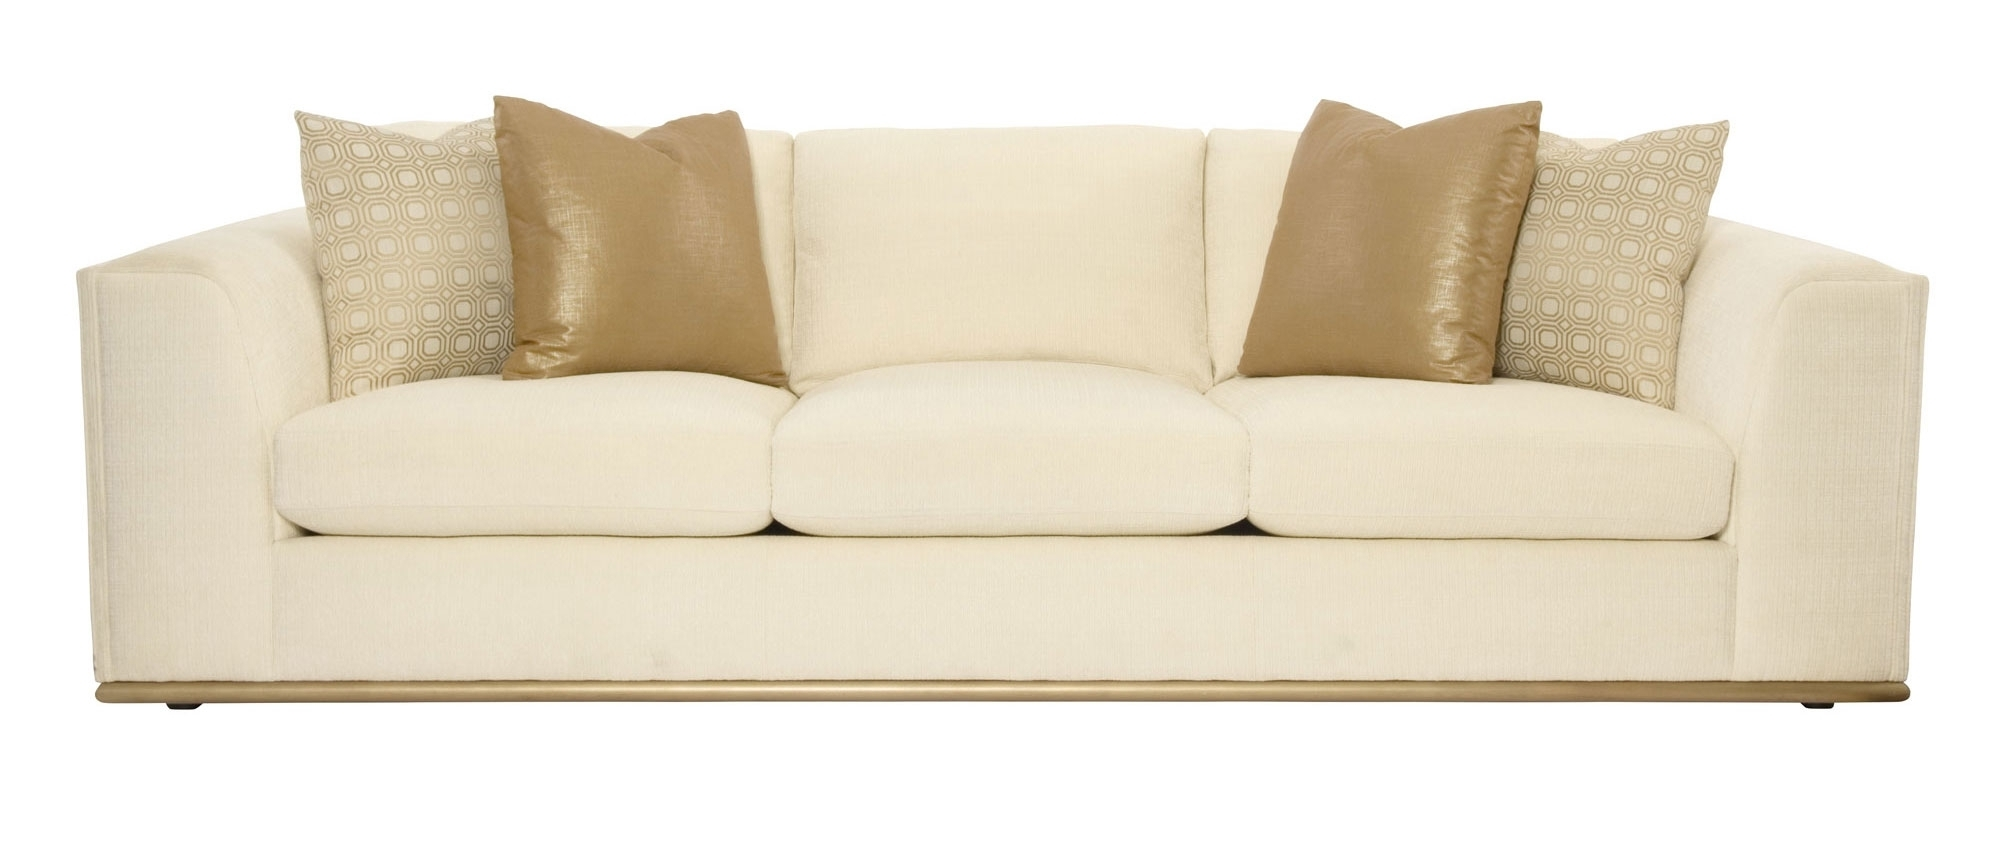 Bernhardt Leather Sofa Dillards • Leather Sofa In Most Current Dillards Sectional Sofas (View 12 of 15)